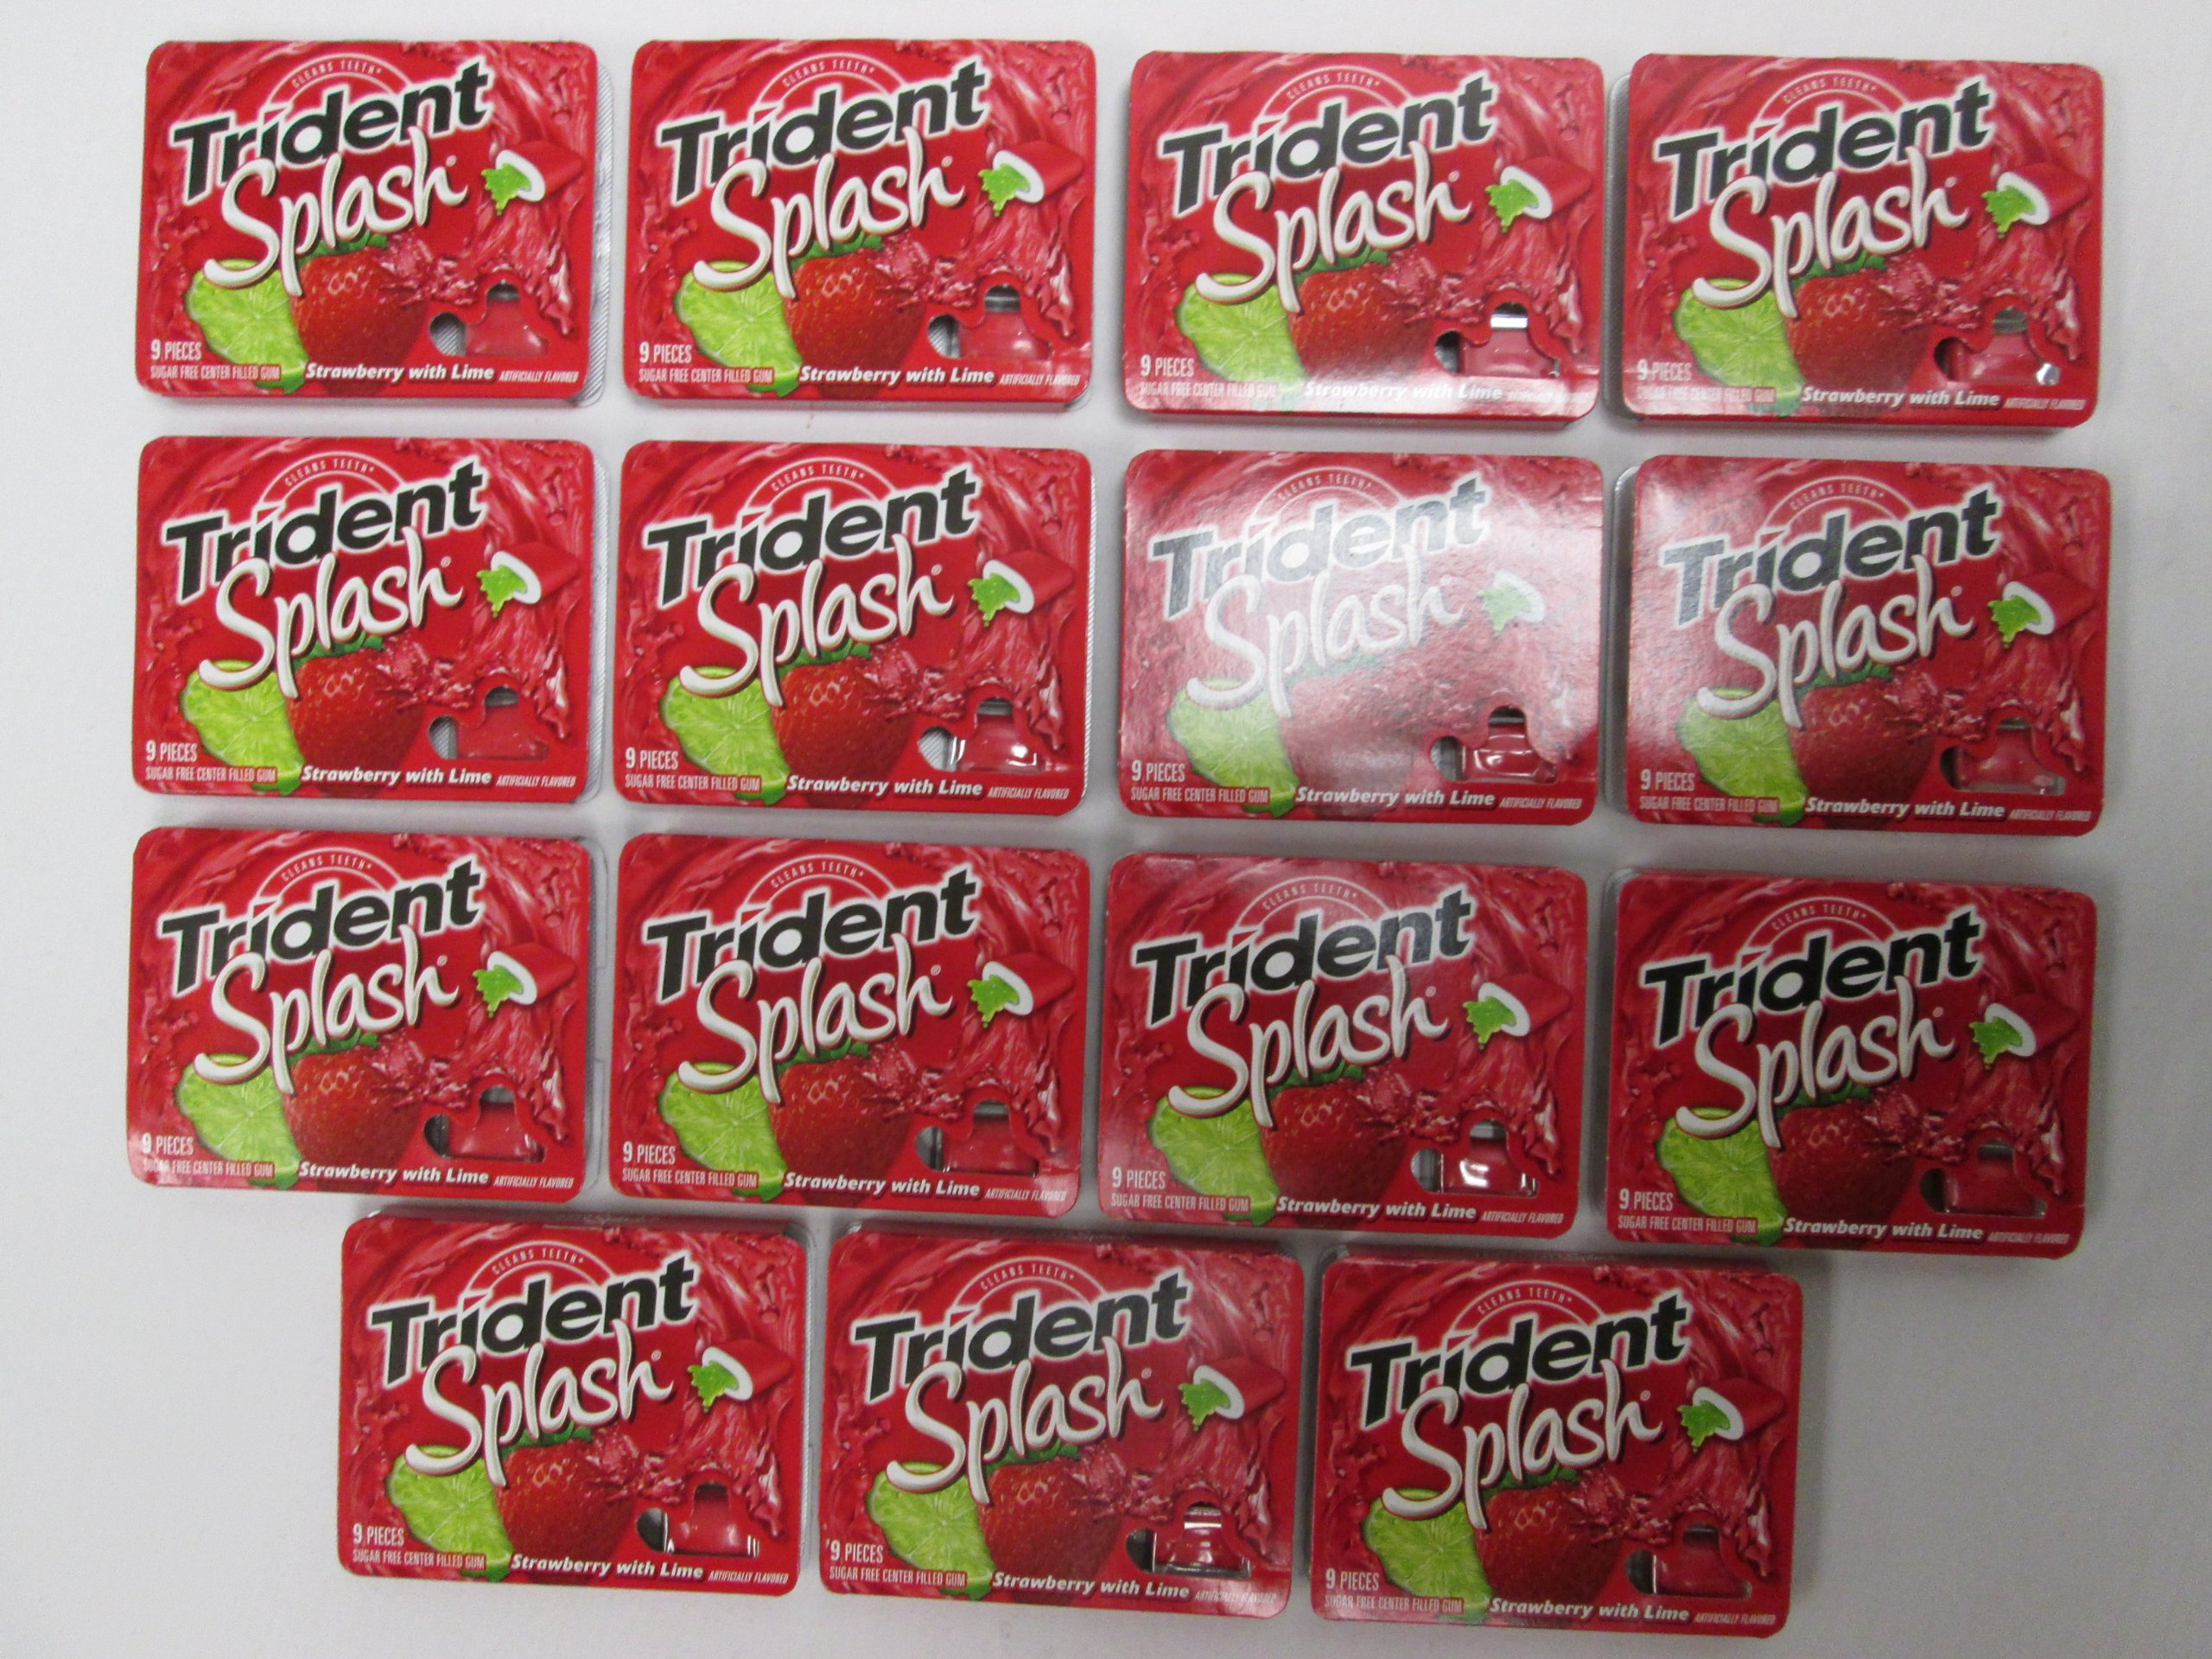 Trident Splash Cleans Teeth Strawberry with Lime Sugar Free Center Filled Chewing Gum - 15 Packs of 9-pieces Packages (135 Pieces Total) - Tj10